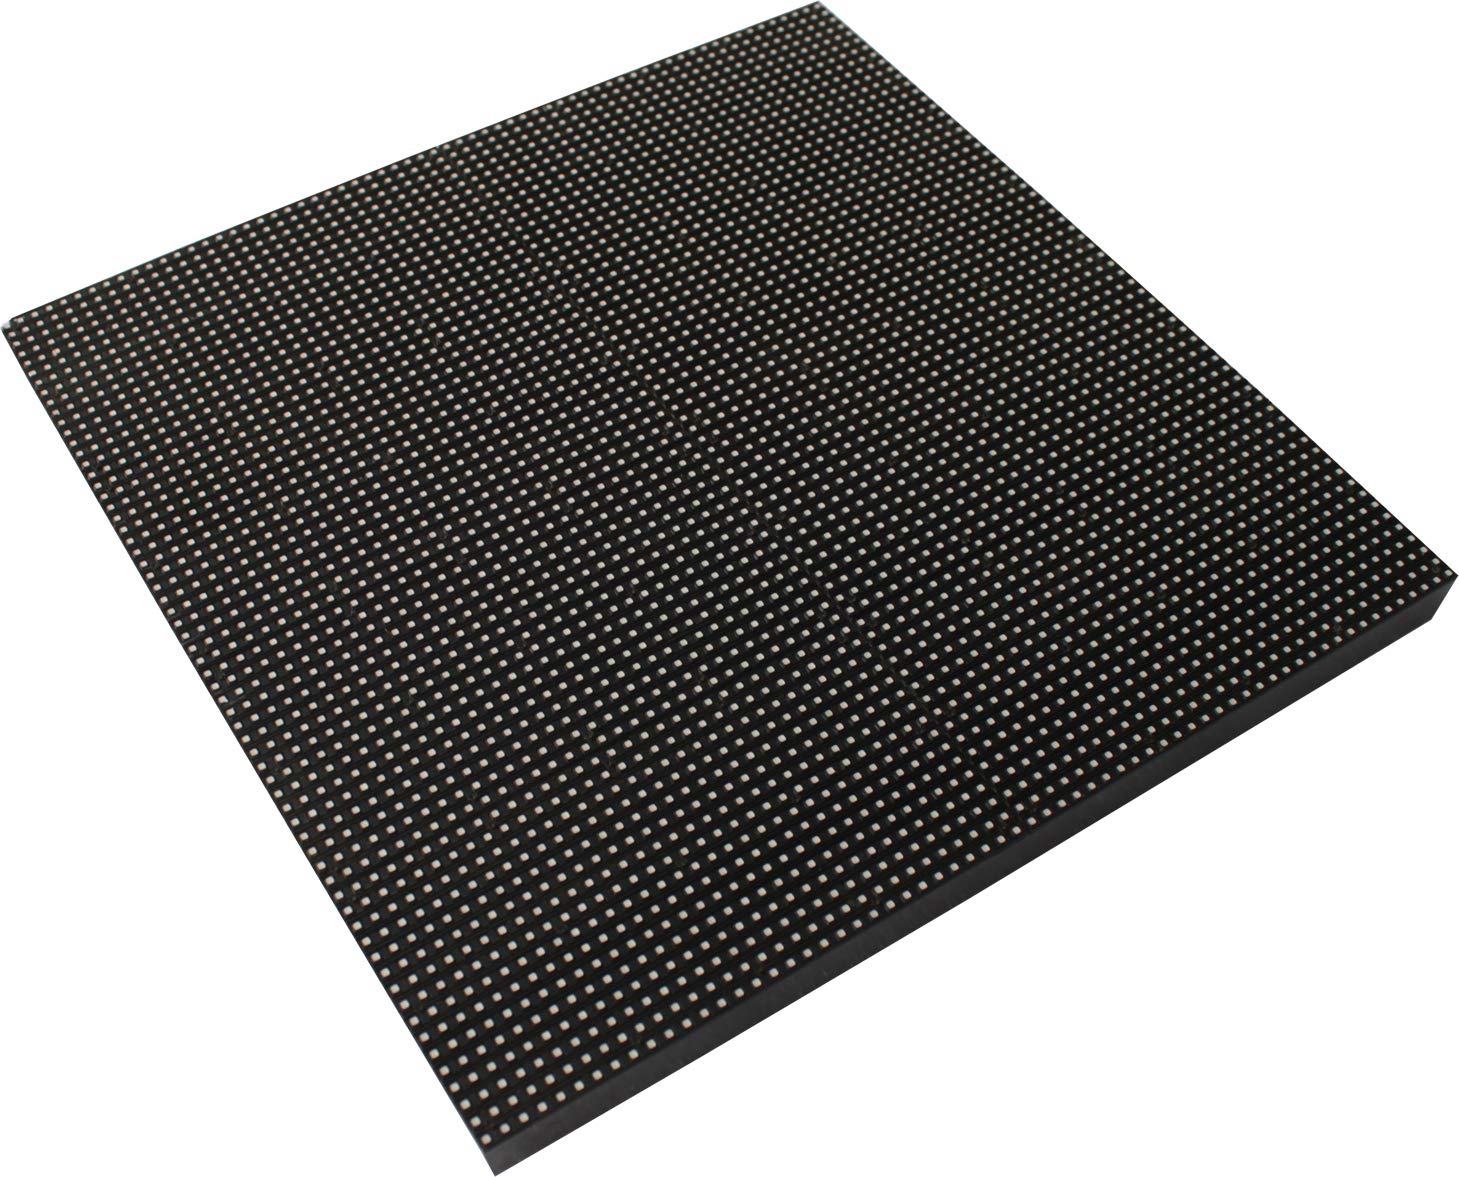 Global LED Display P3.91 Outdoor LED Screen Module RGB 250x250 mm Matrix  with Signal Belt: Amazon.in: Electronics